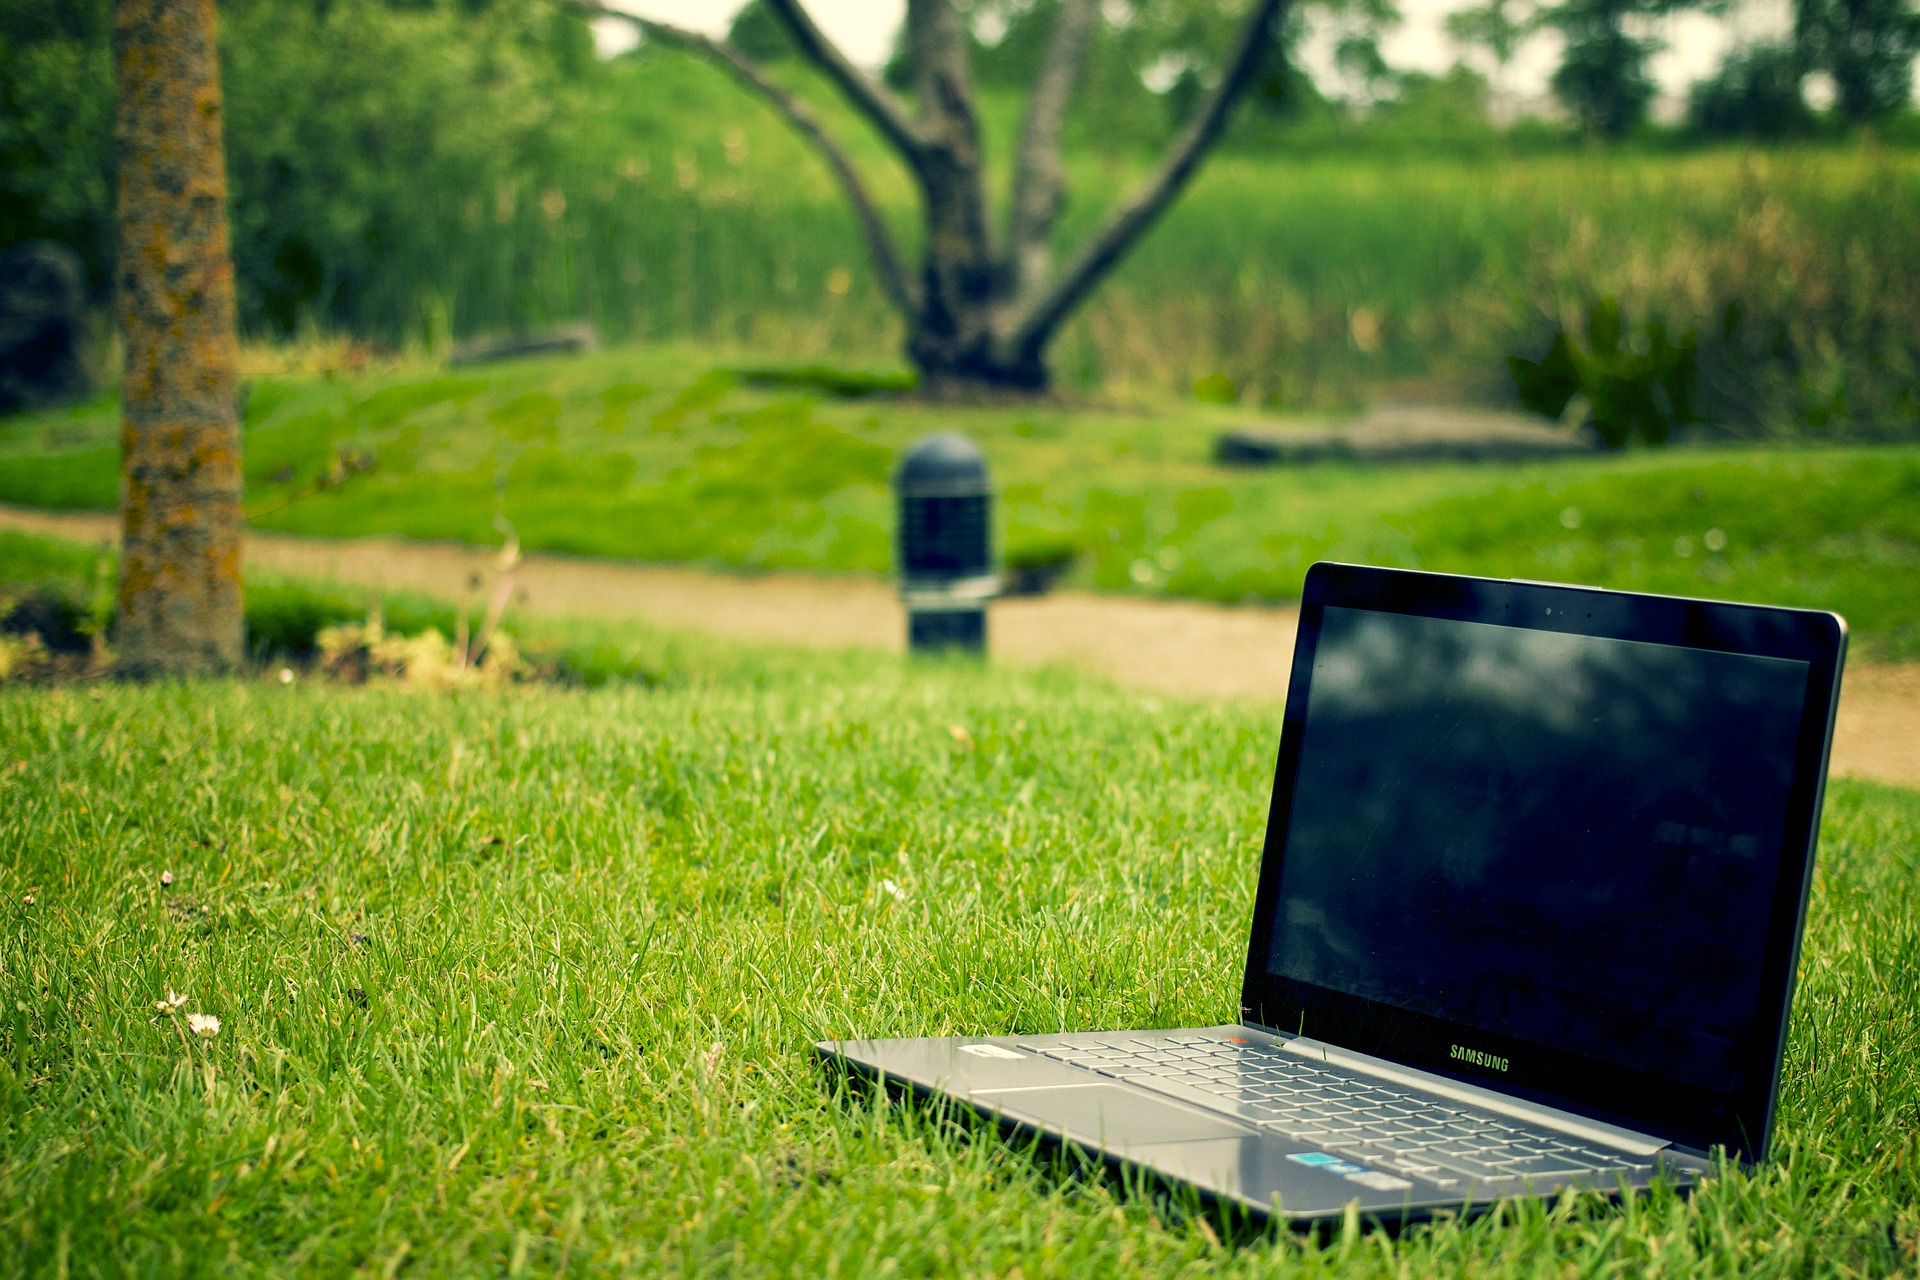 laptop on grass in a park